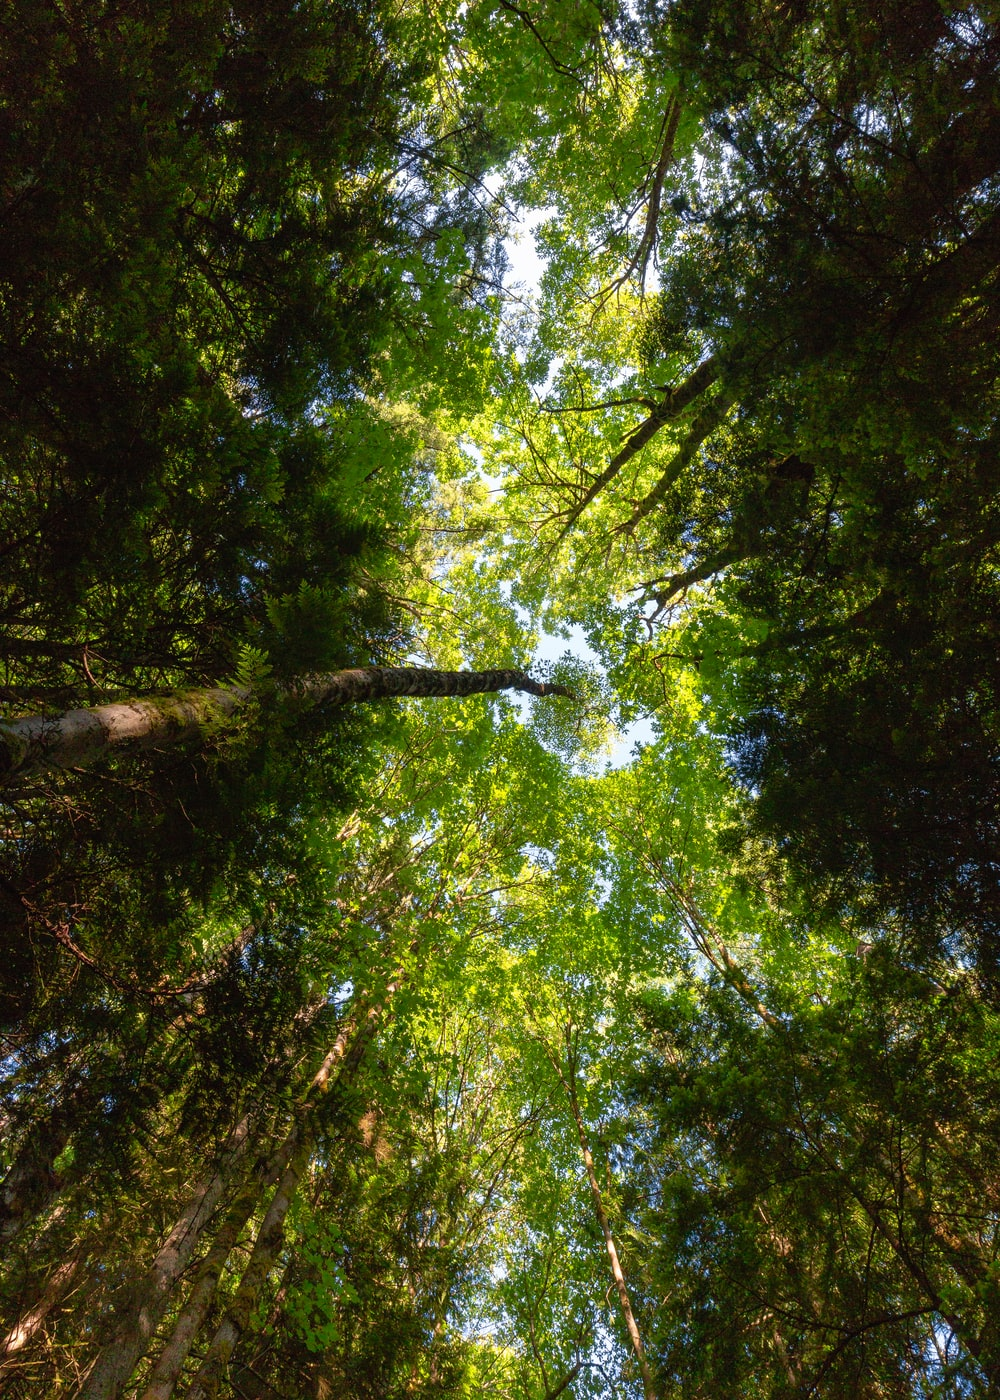 low angle photo of green leafed trees